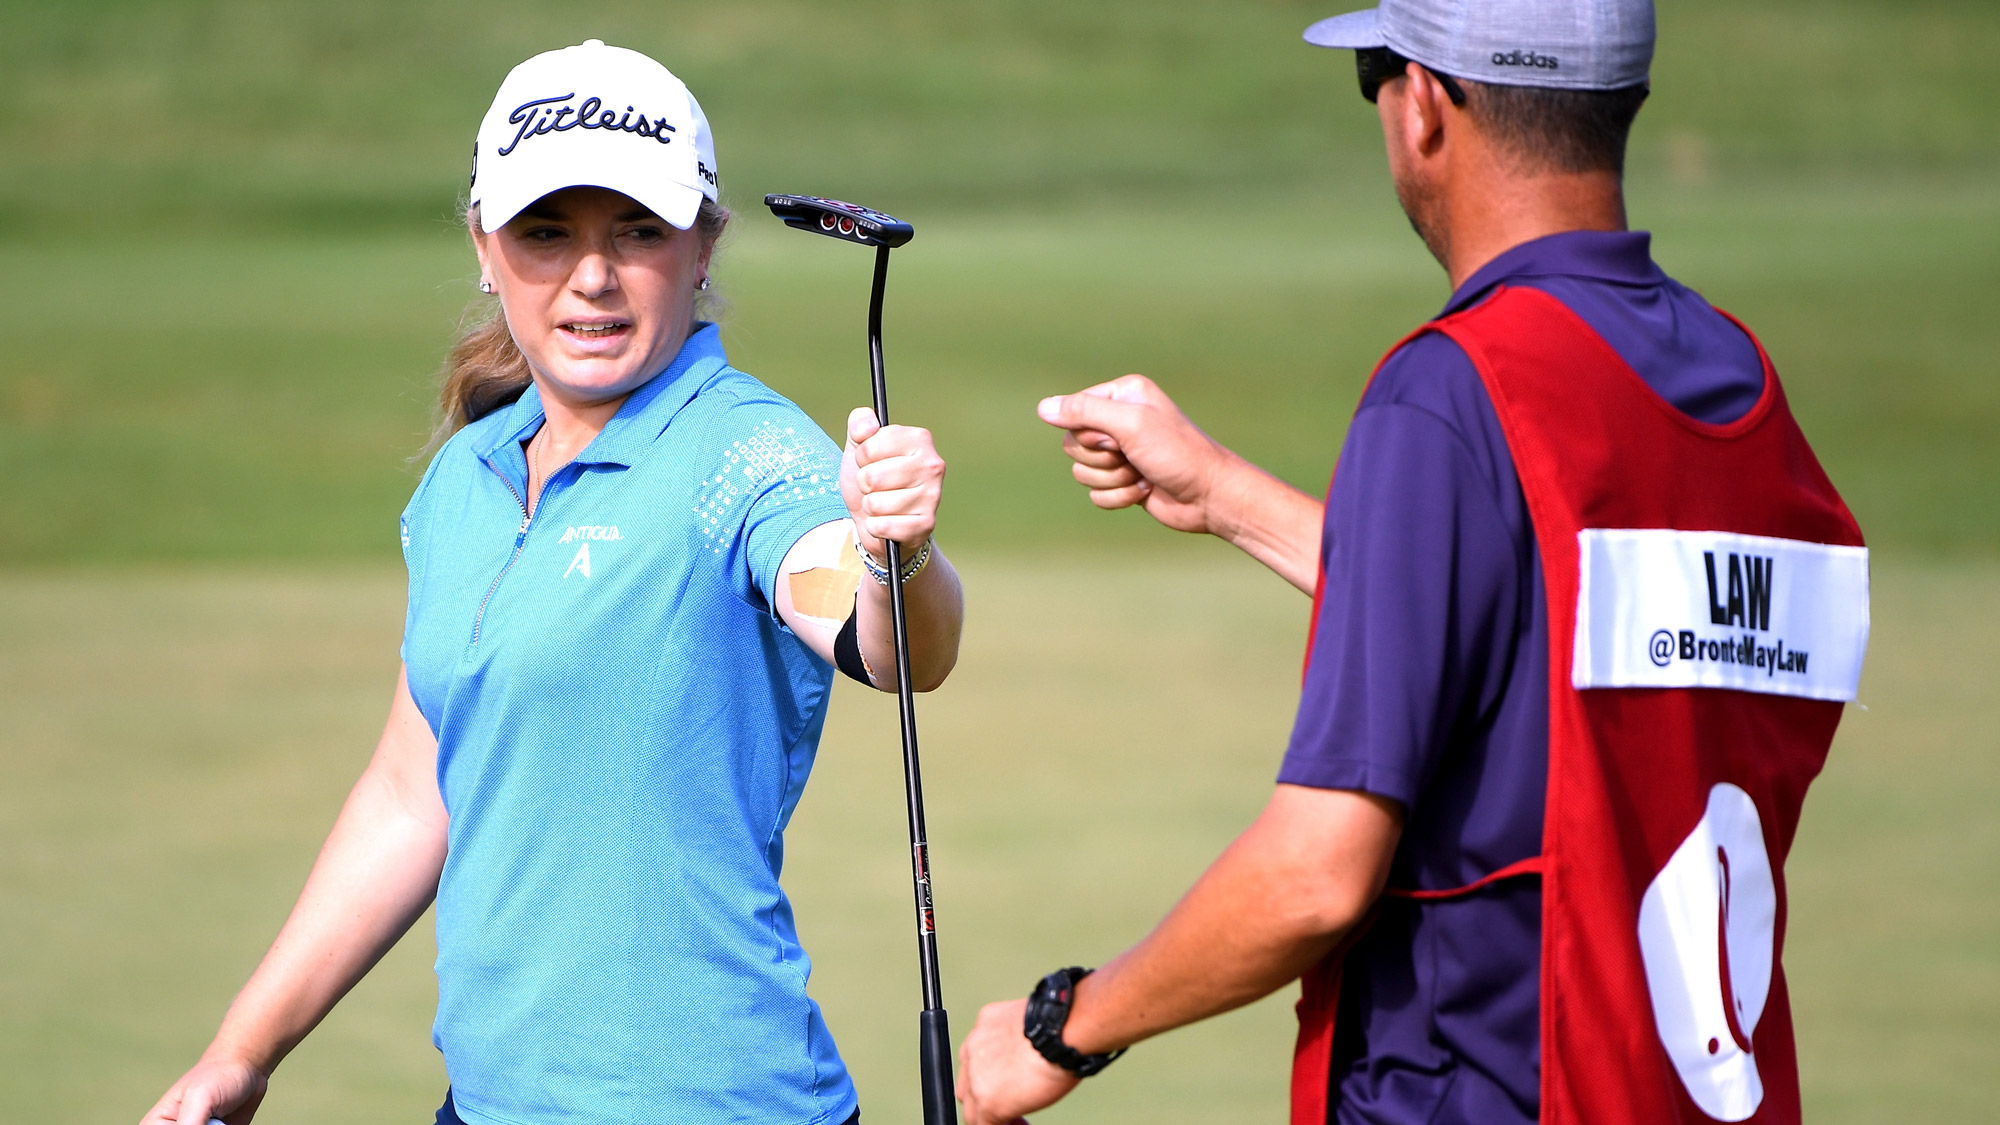 Bronte Law Makes Birdie on Day Two in Hawaii